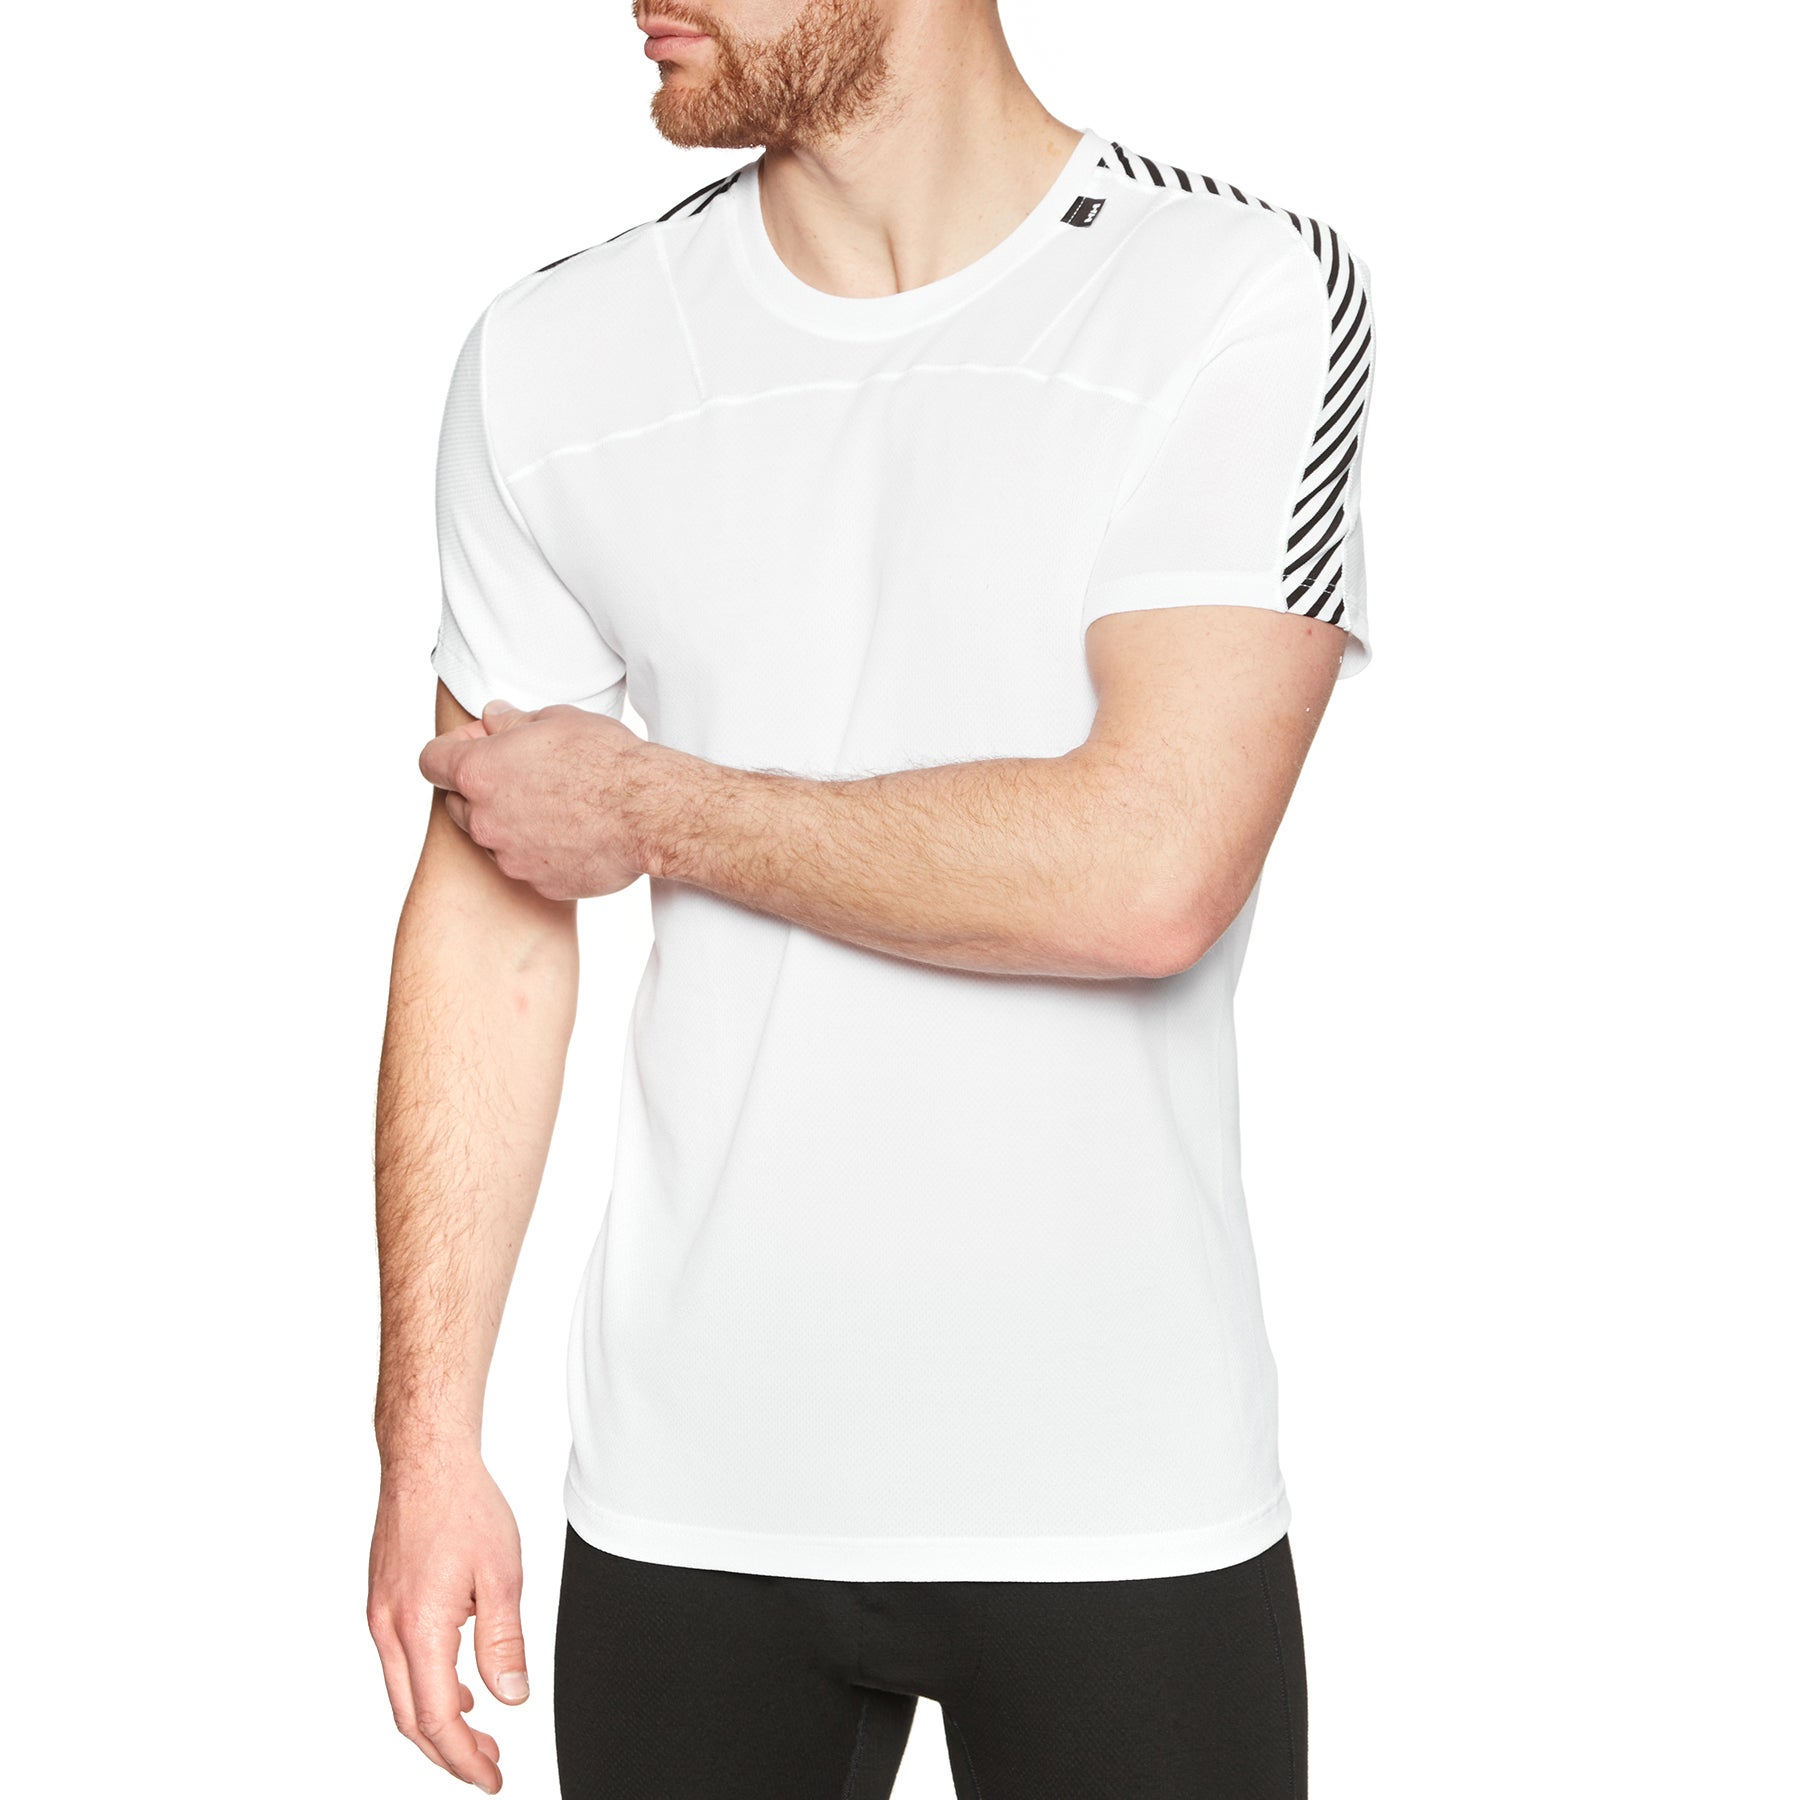 Helly Hansen Lifa Base Layer Top - White